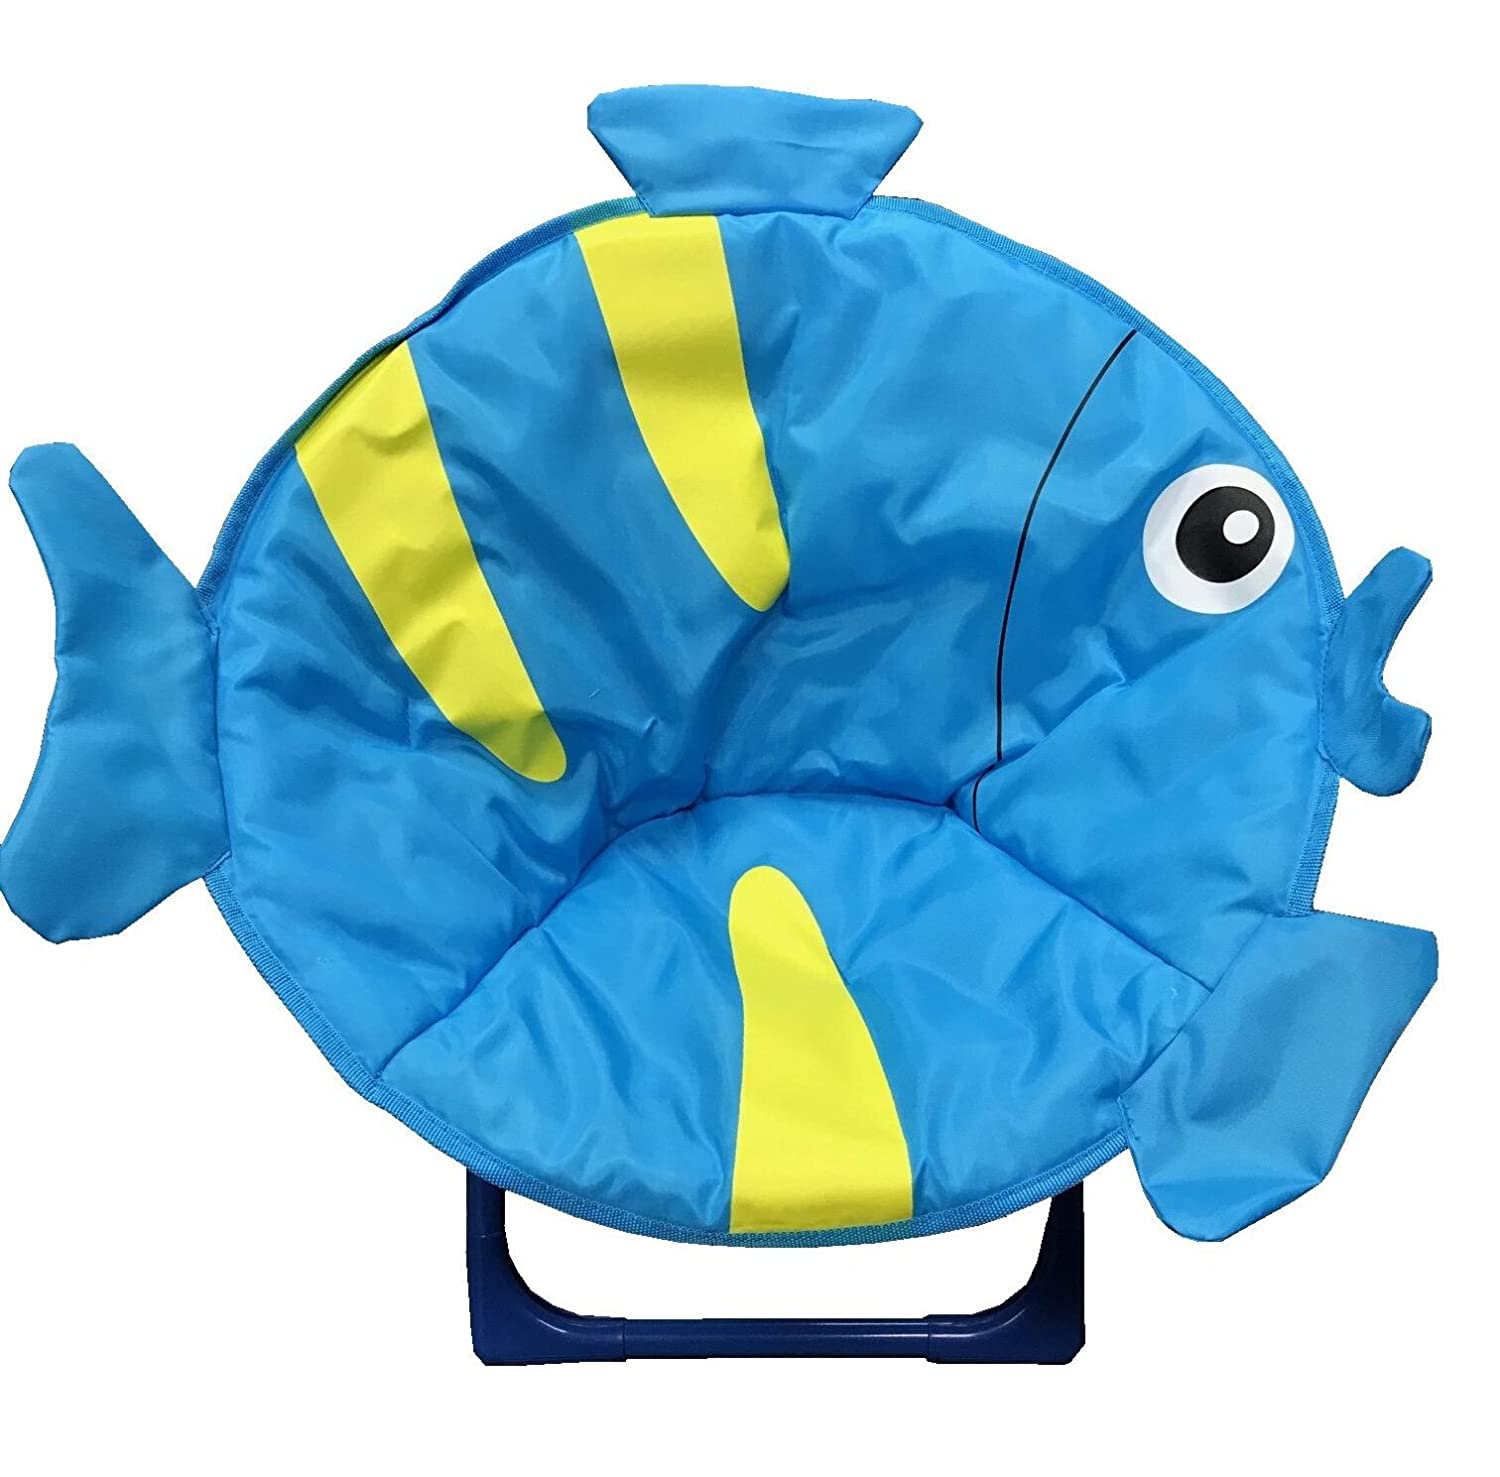 just4baby Kids Children Foldable Bedroom Play Room Moon Chair Moonchair Blue Fish Design